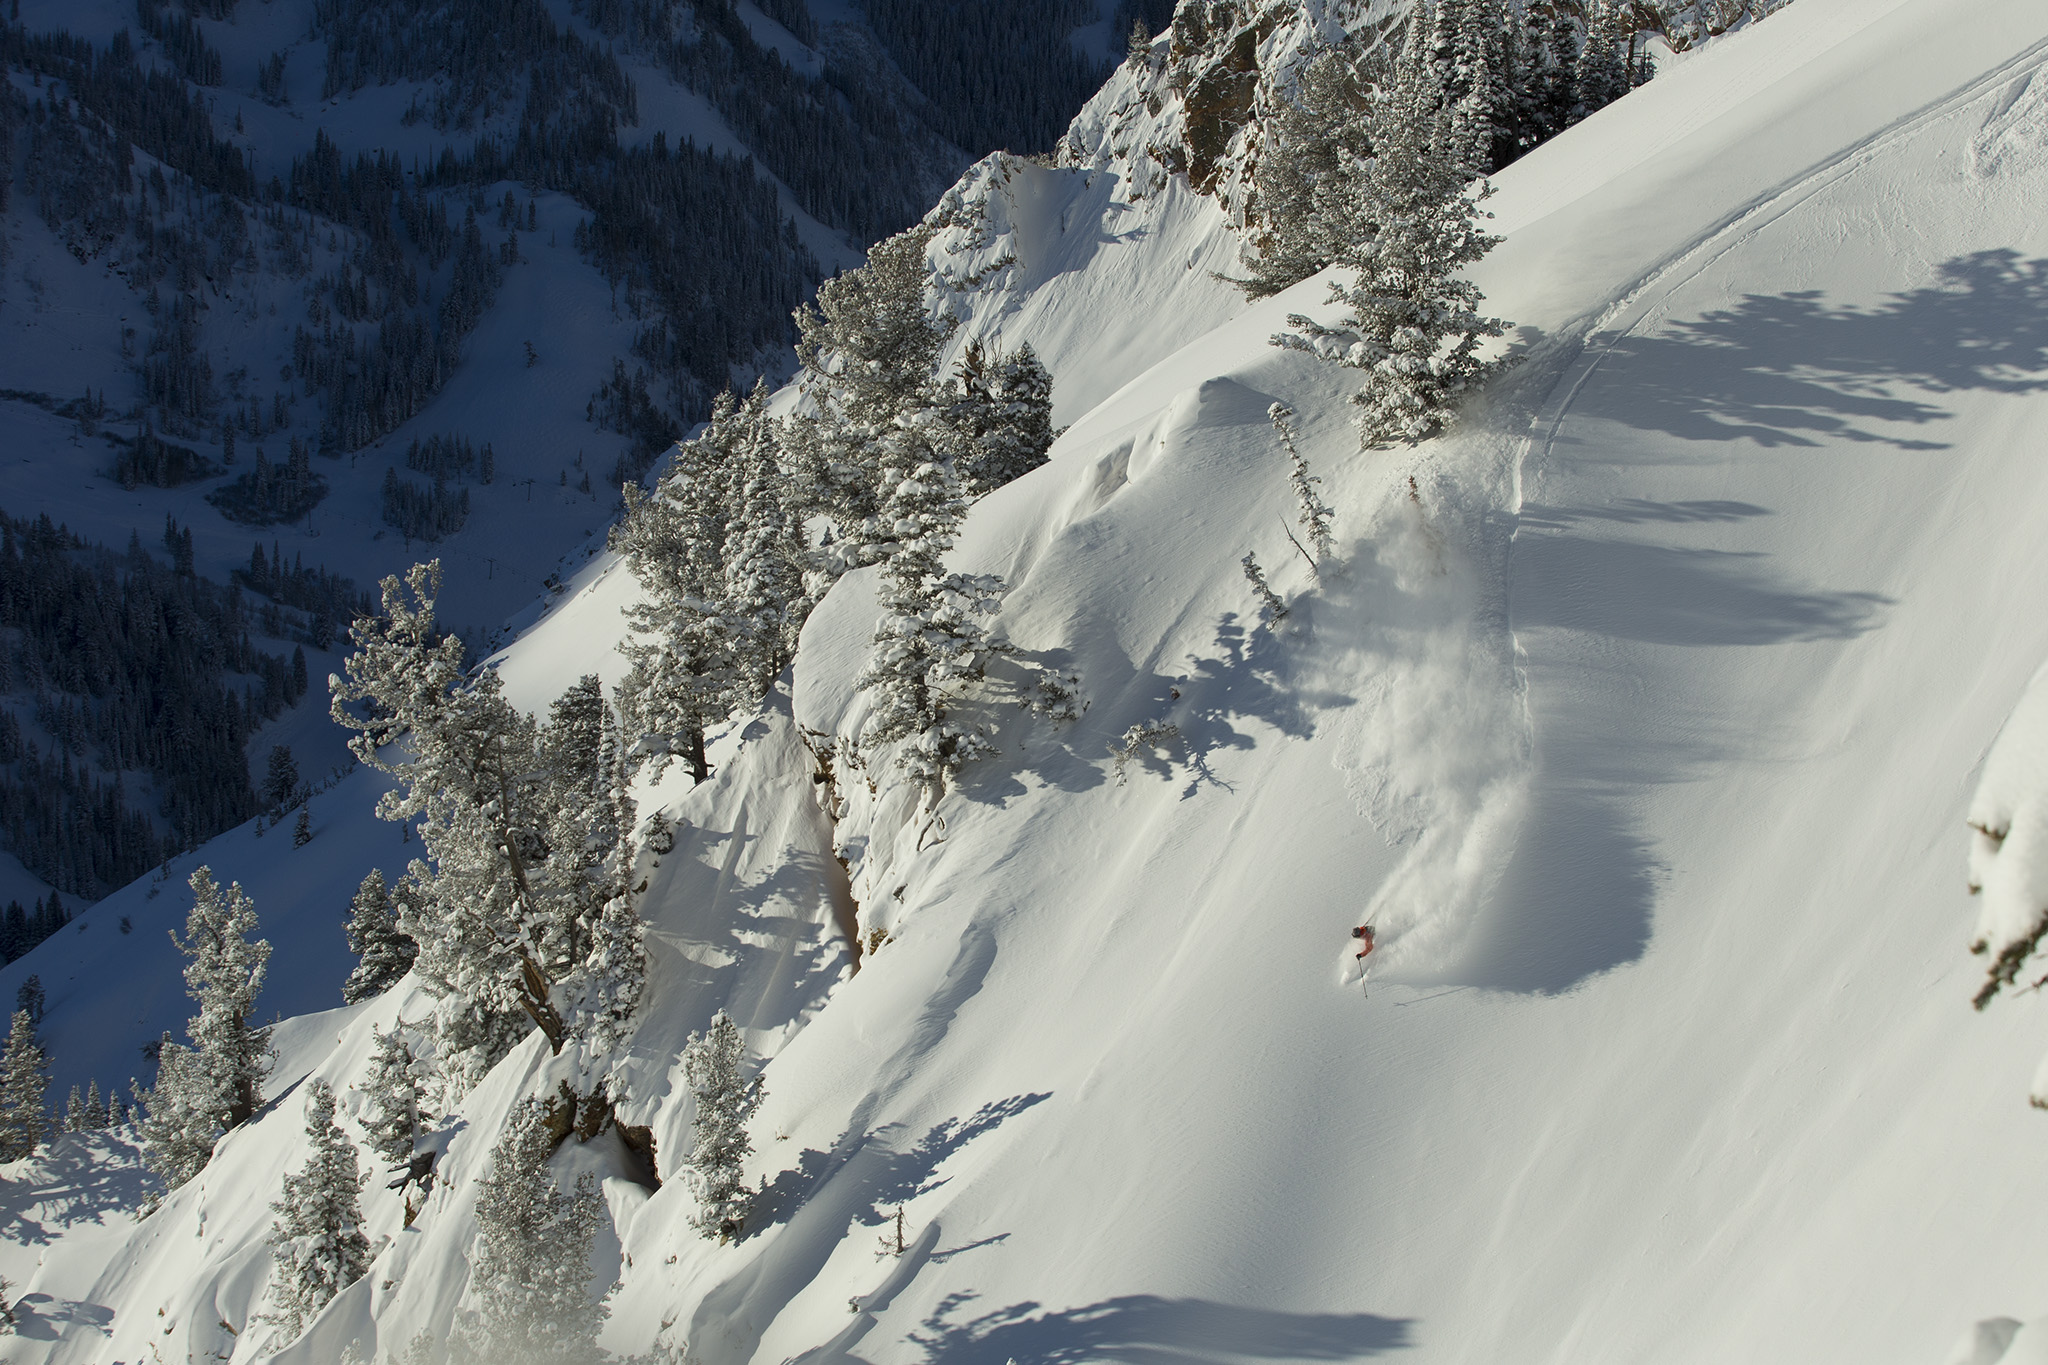 Sage Cattabriga-Alosa, Wasatch Backcountry, Utah photo:Adam Clark